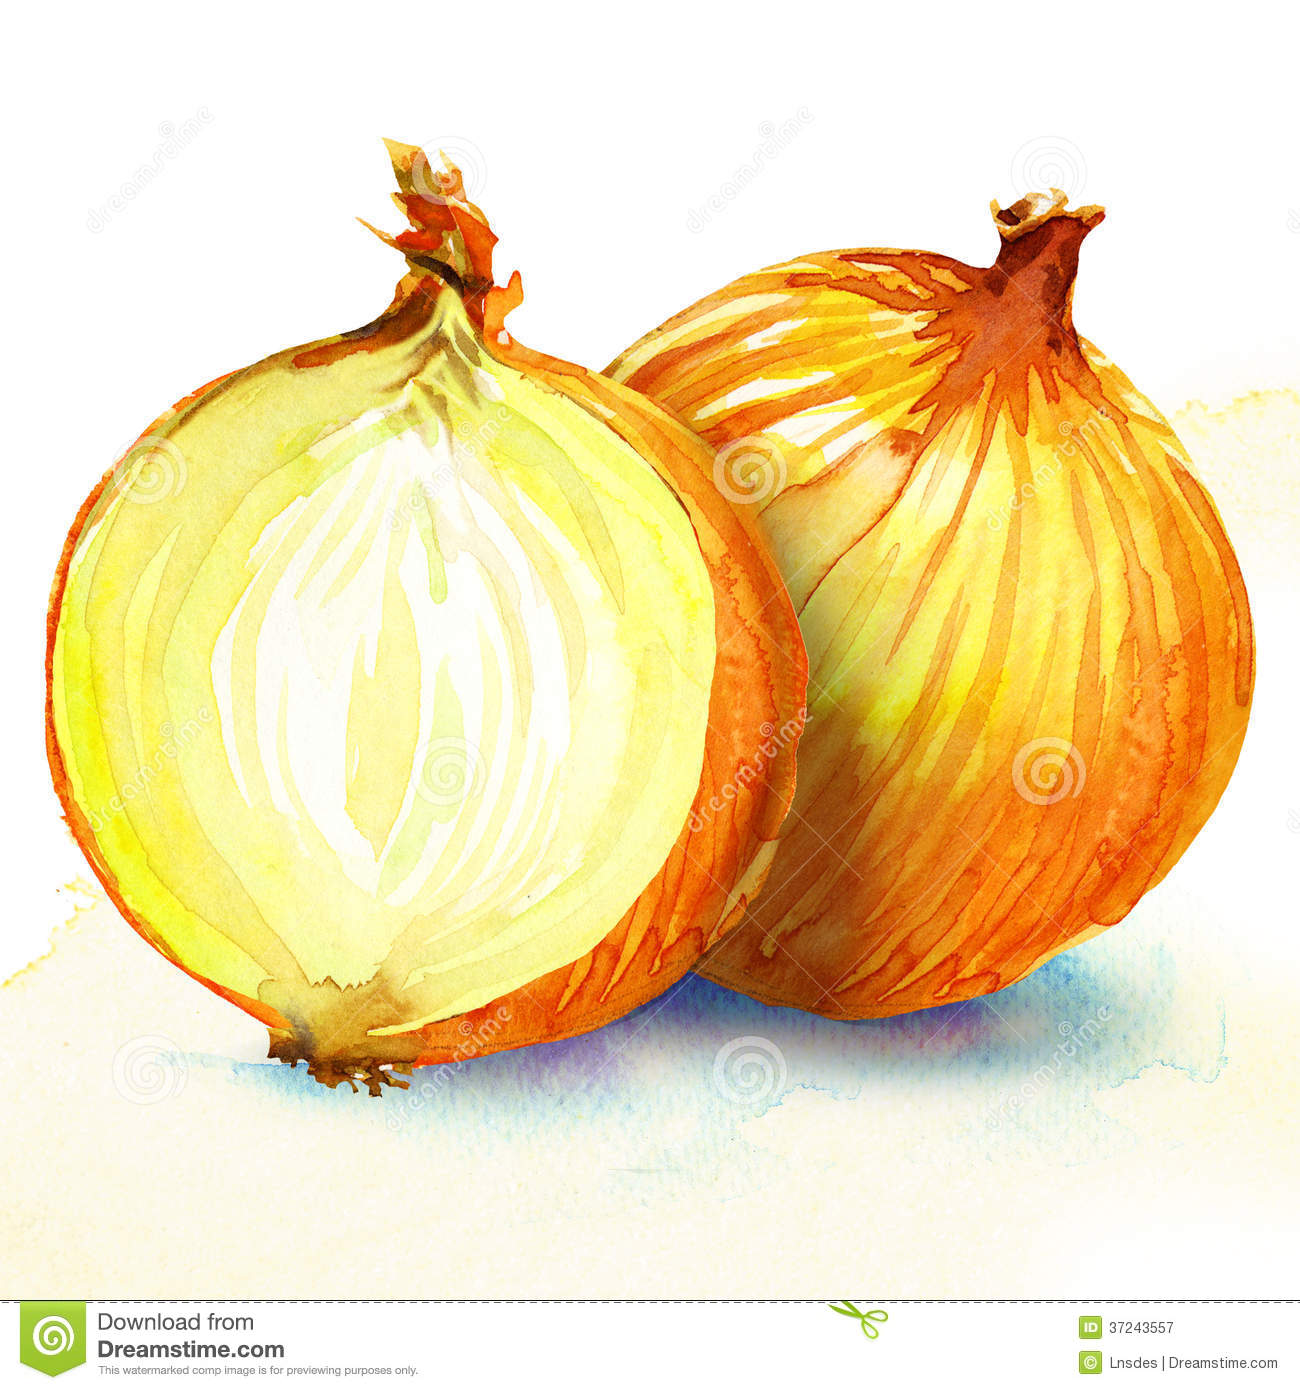 Onion Watercolor Painting On White Background Royalty